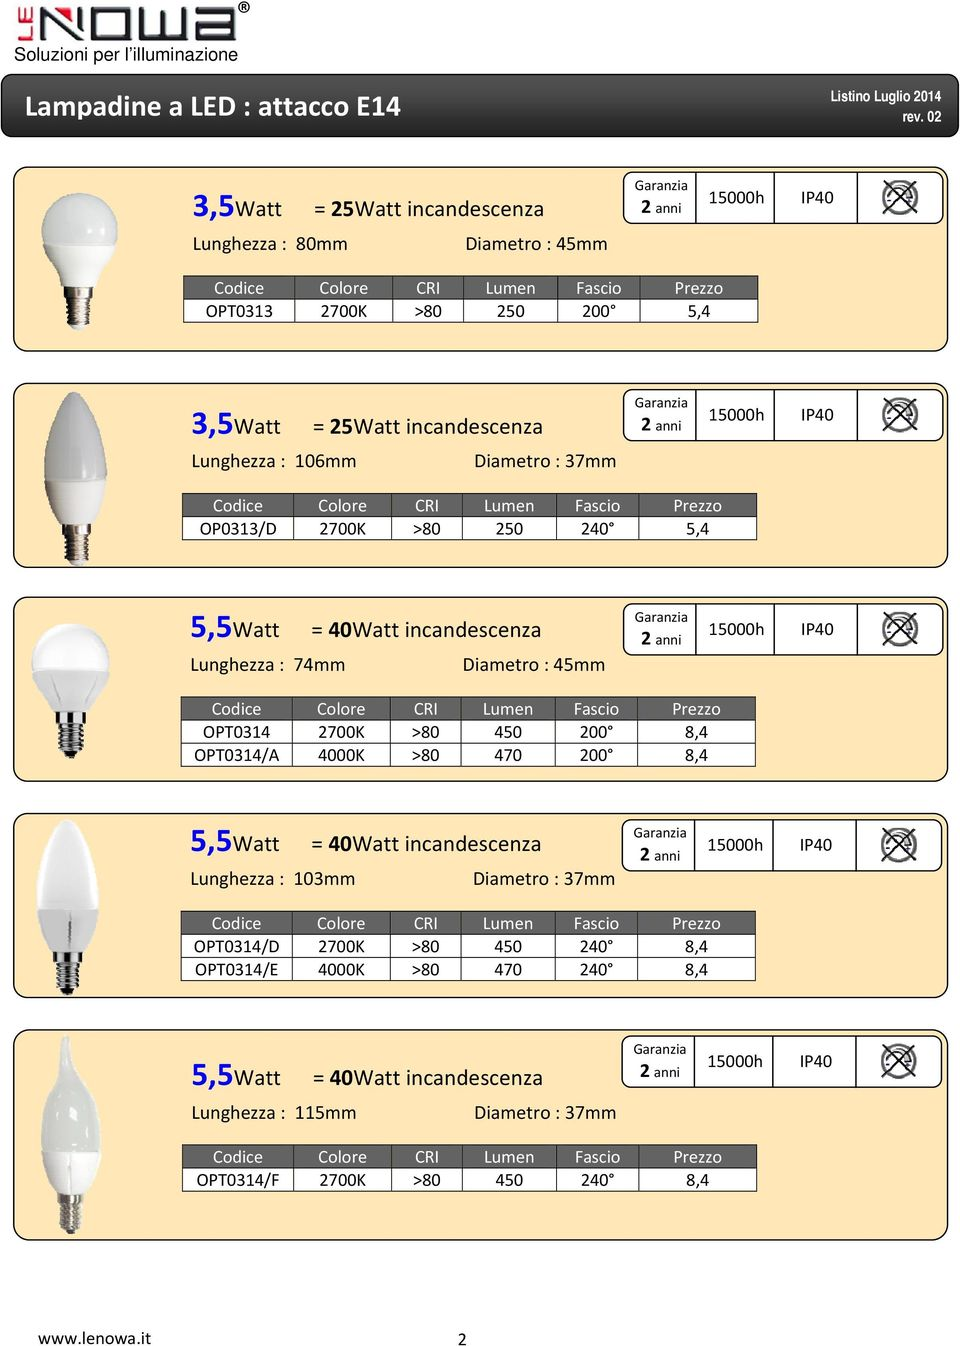 15000h OPT0314 2700K >80 450 200 8,4 OPT0314/A 4000K >80 470 200 8,4 5,5Watt = 40Watt incandescenza Lunghezza : 103mm Diametro : 37mm 15000h OPT0314/D